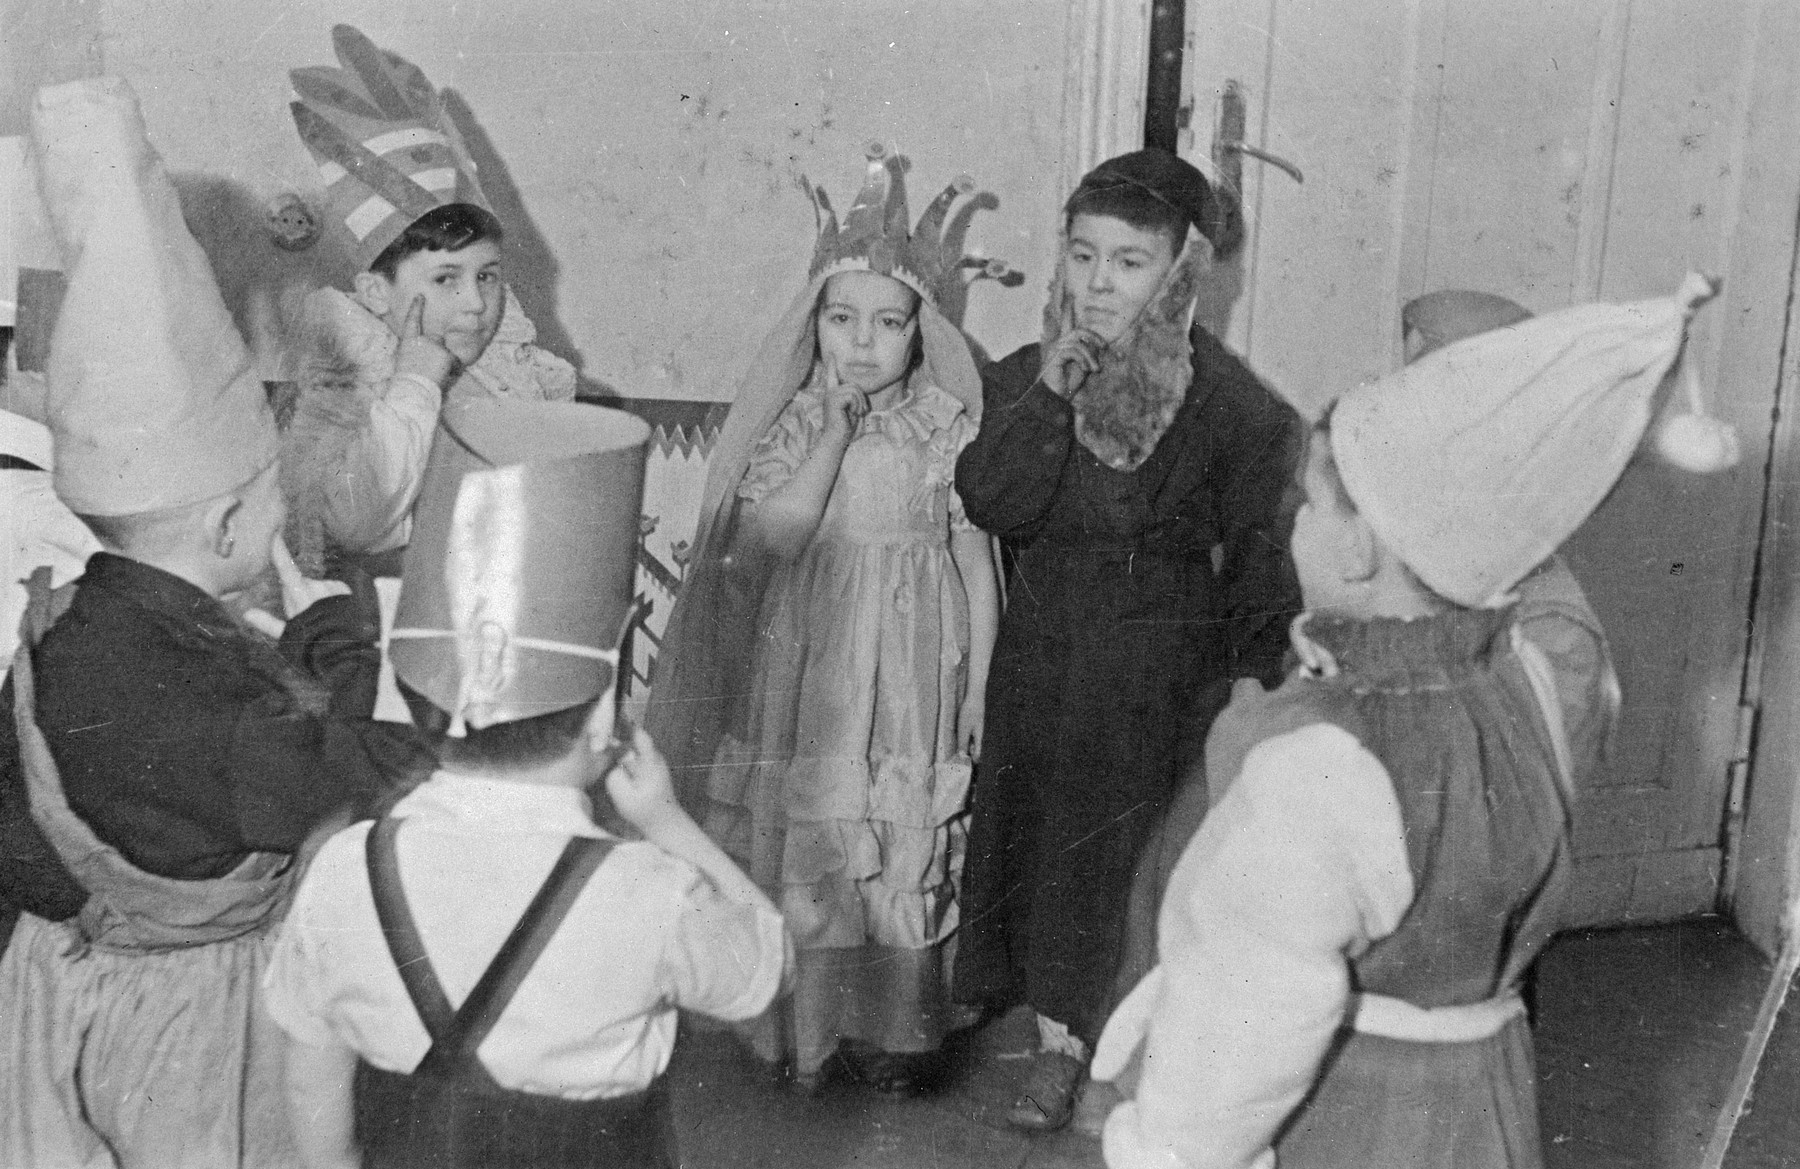 Children dressed in costumes from the Lodz Jewish kindergarten perform what is probably a Purim play.